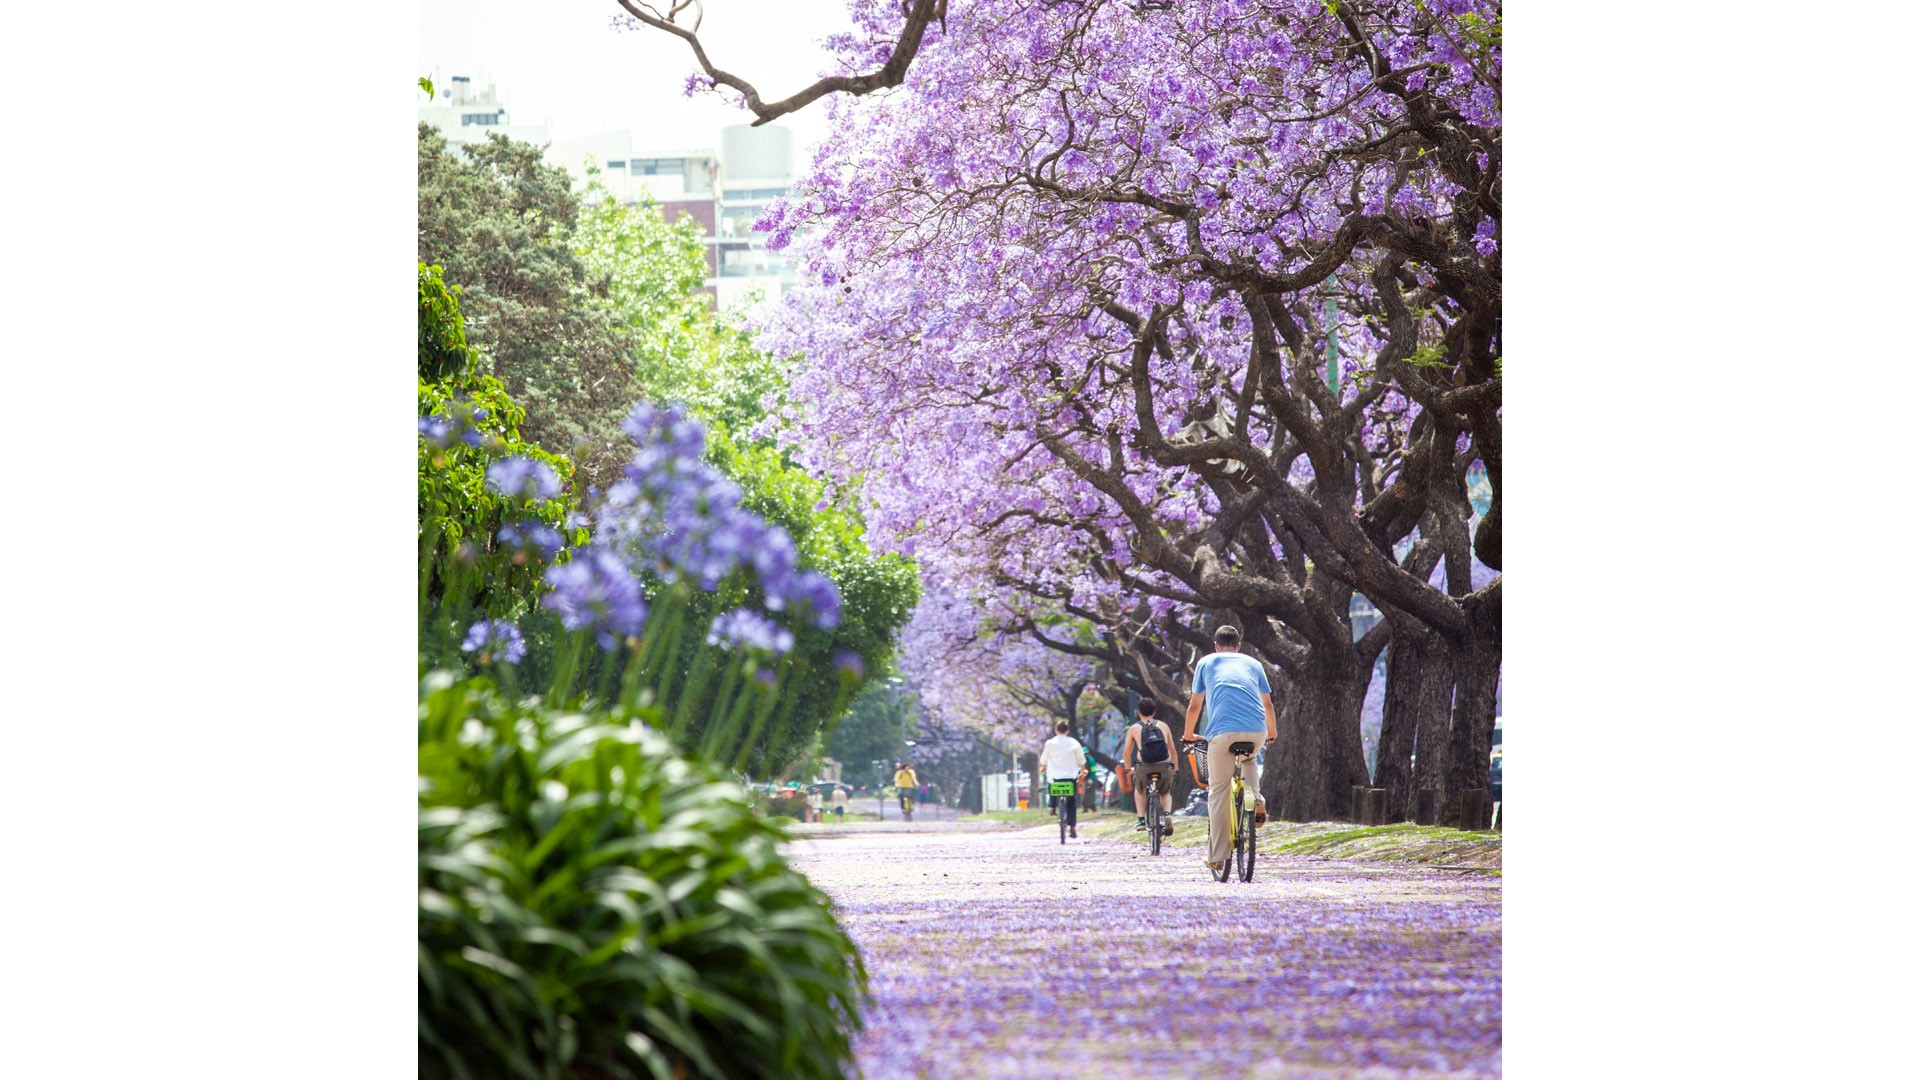 An avenue of jacaranda trees in Buenos Aires